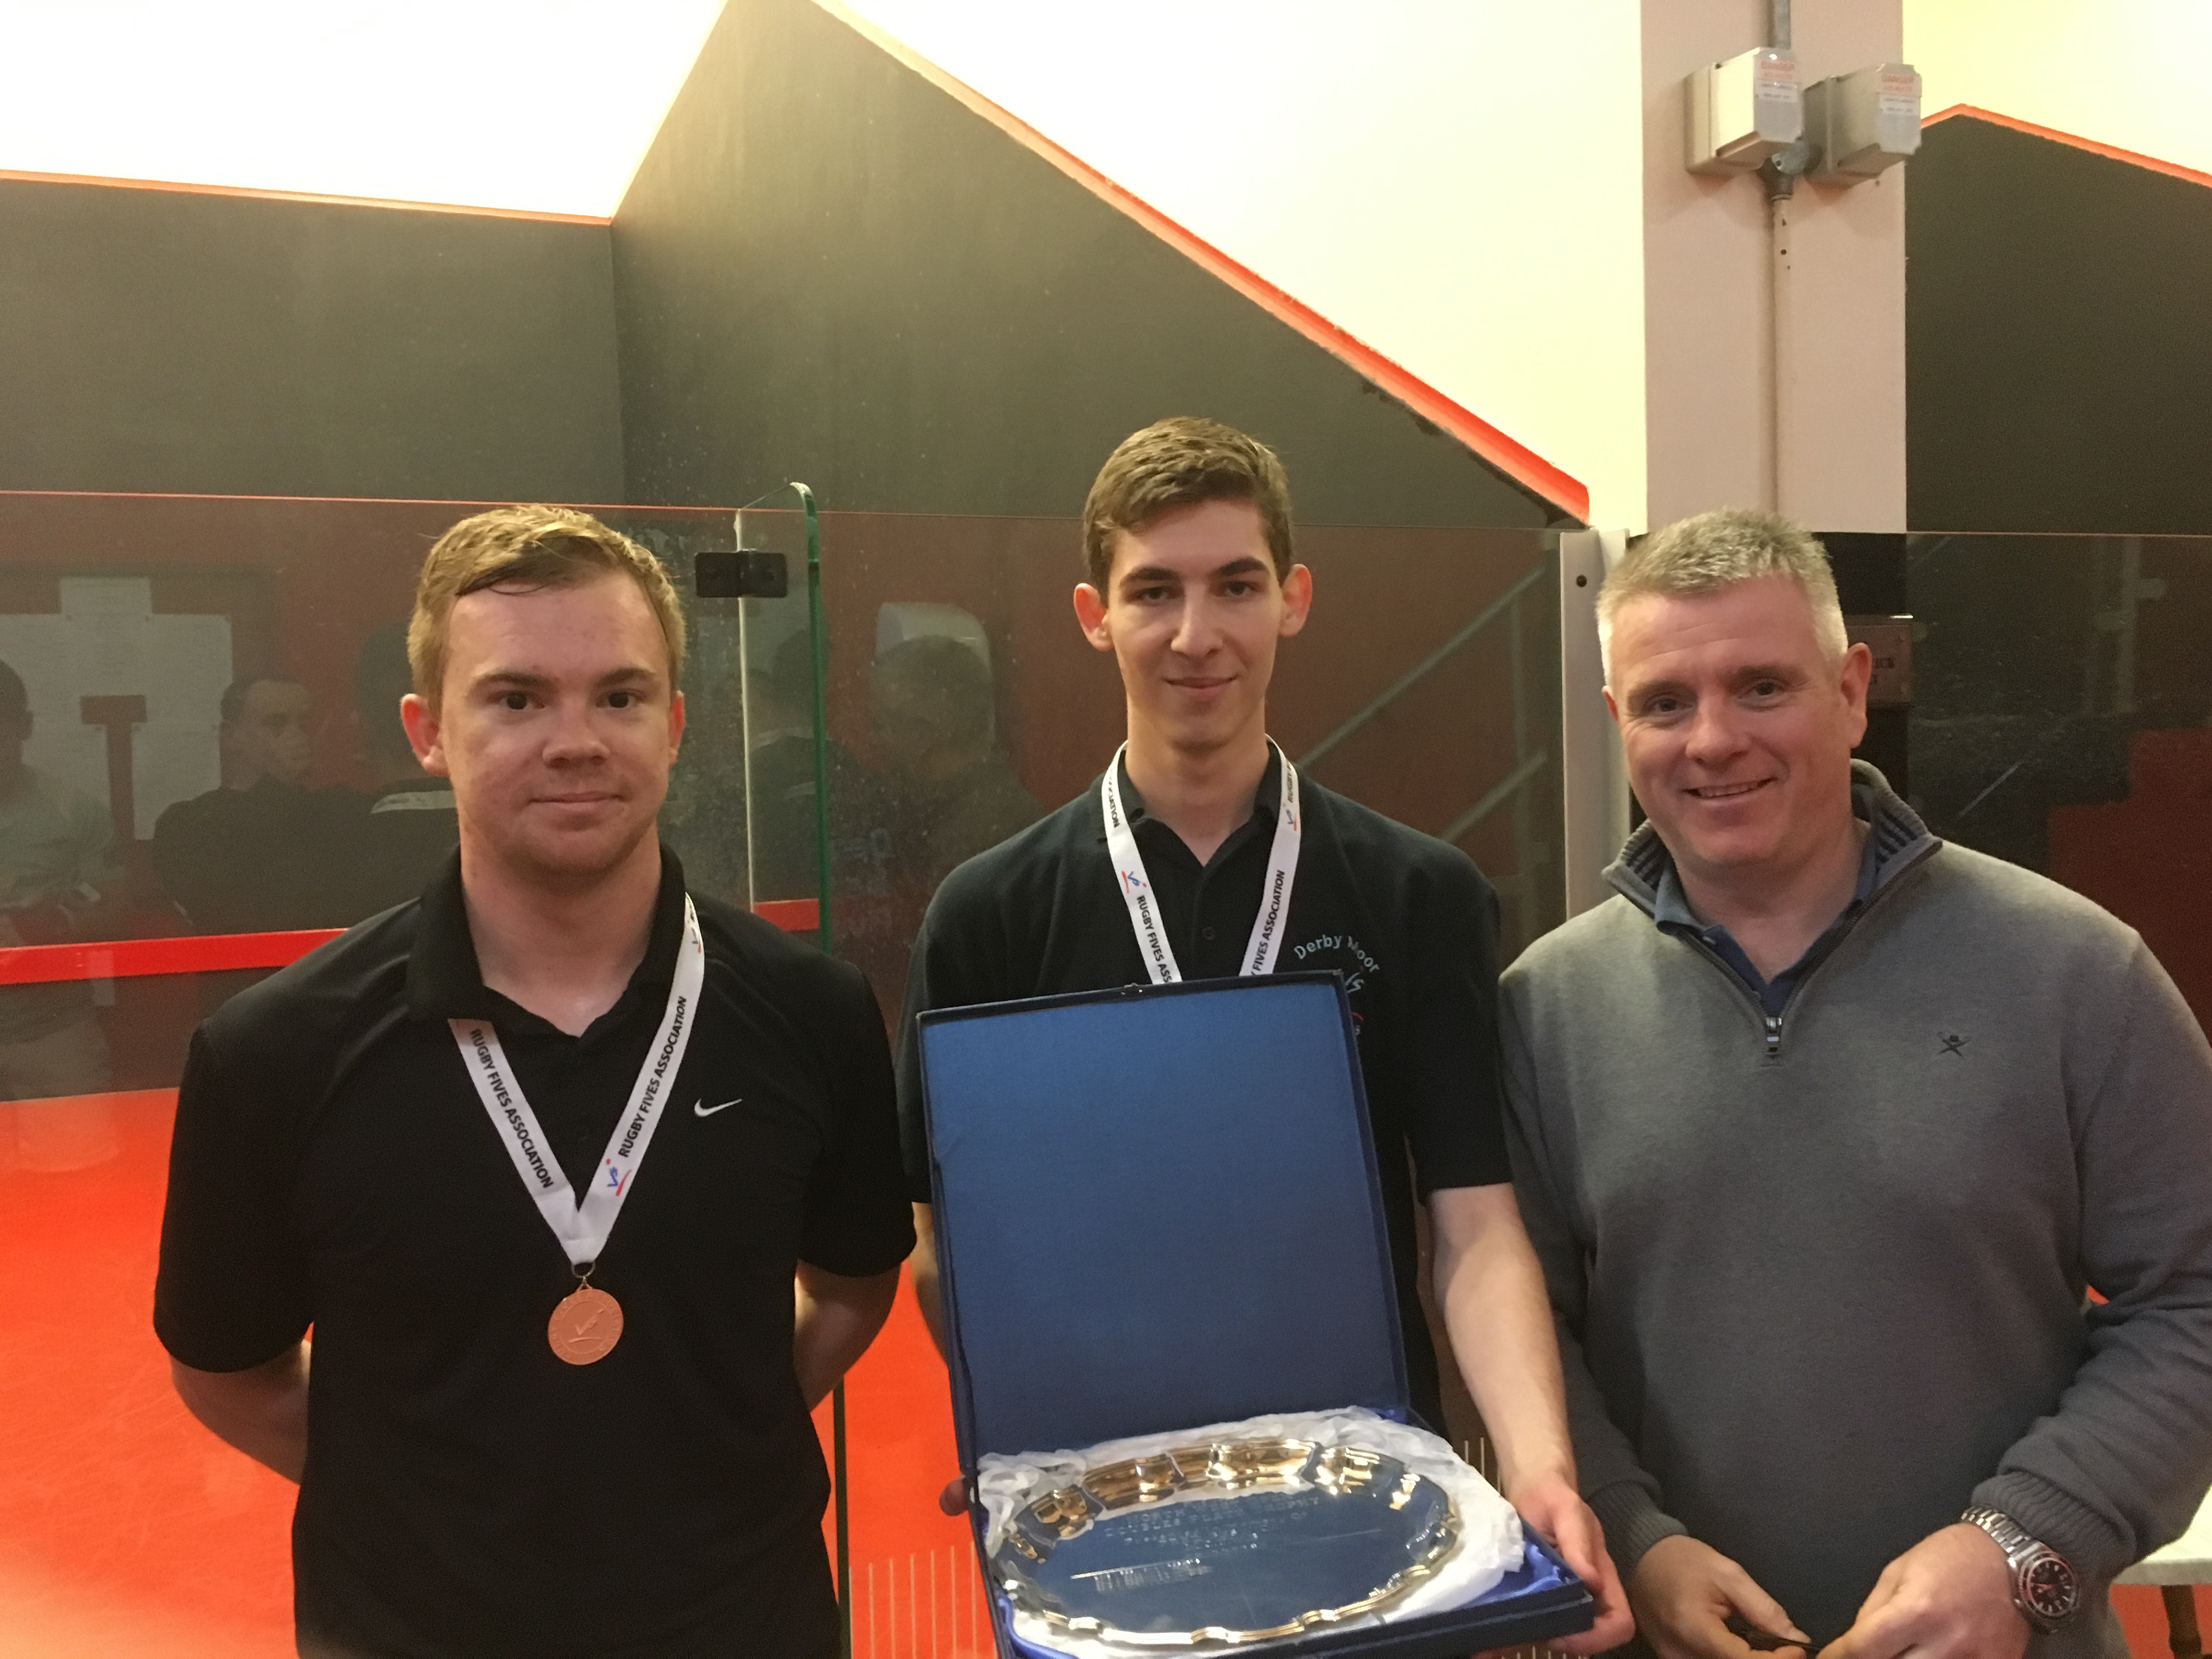 First-time Plate winners Wheatley & Baxter